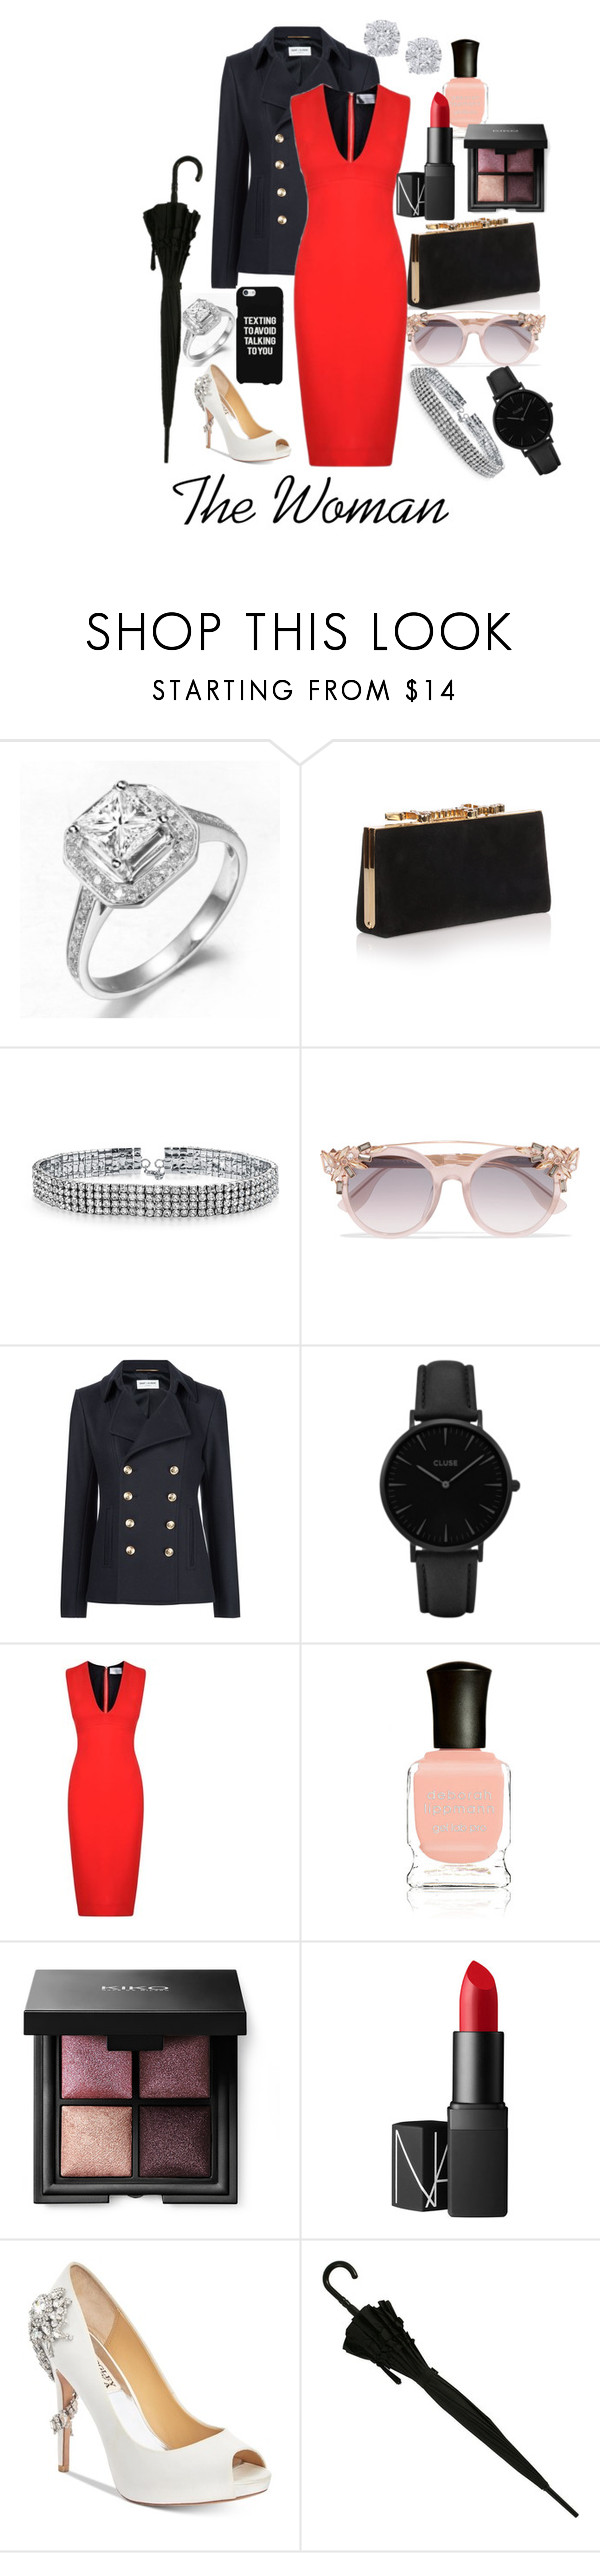 """The Woman (Irene Adler)"" by baritone-roe on Polyvore featuring Jimmy Choo, Bling Jewelry, Yves Saint Laurent, CLUSE, Victoria Beckham, Deborah Lippmann, NARS Cosmetics, Badgley Mischka, Effy Jewelry and Samsung"